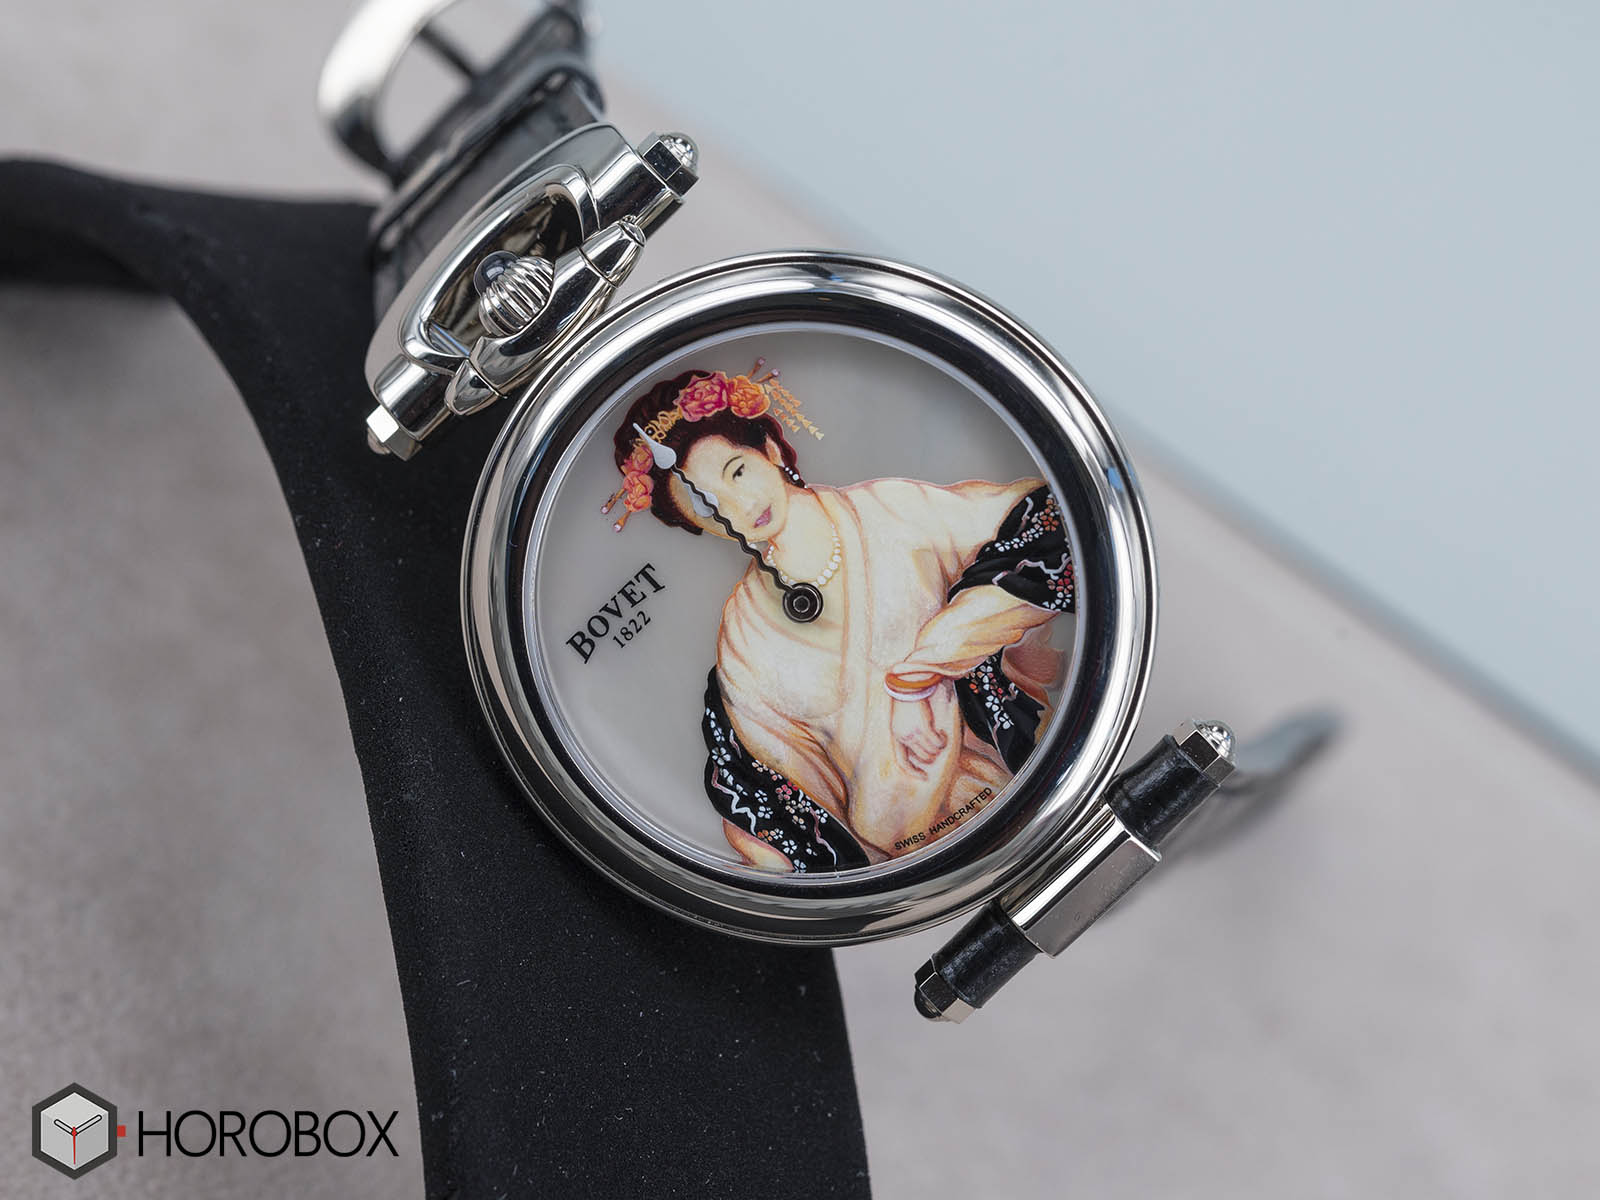 bovet-secret-beauty-onlywatch.jpg